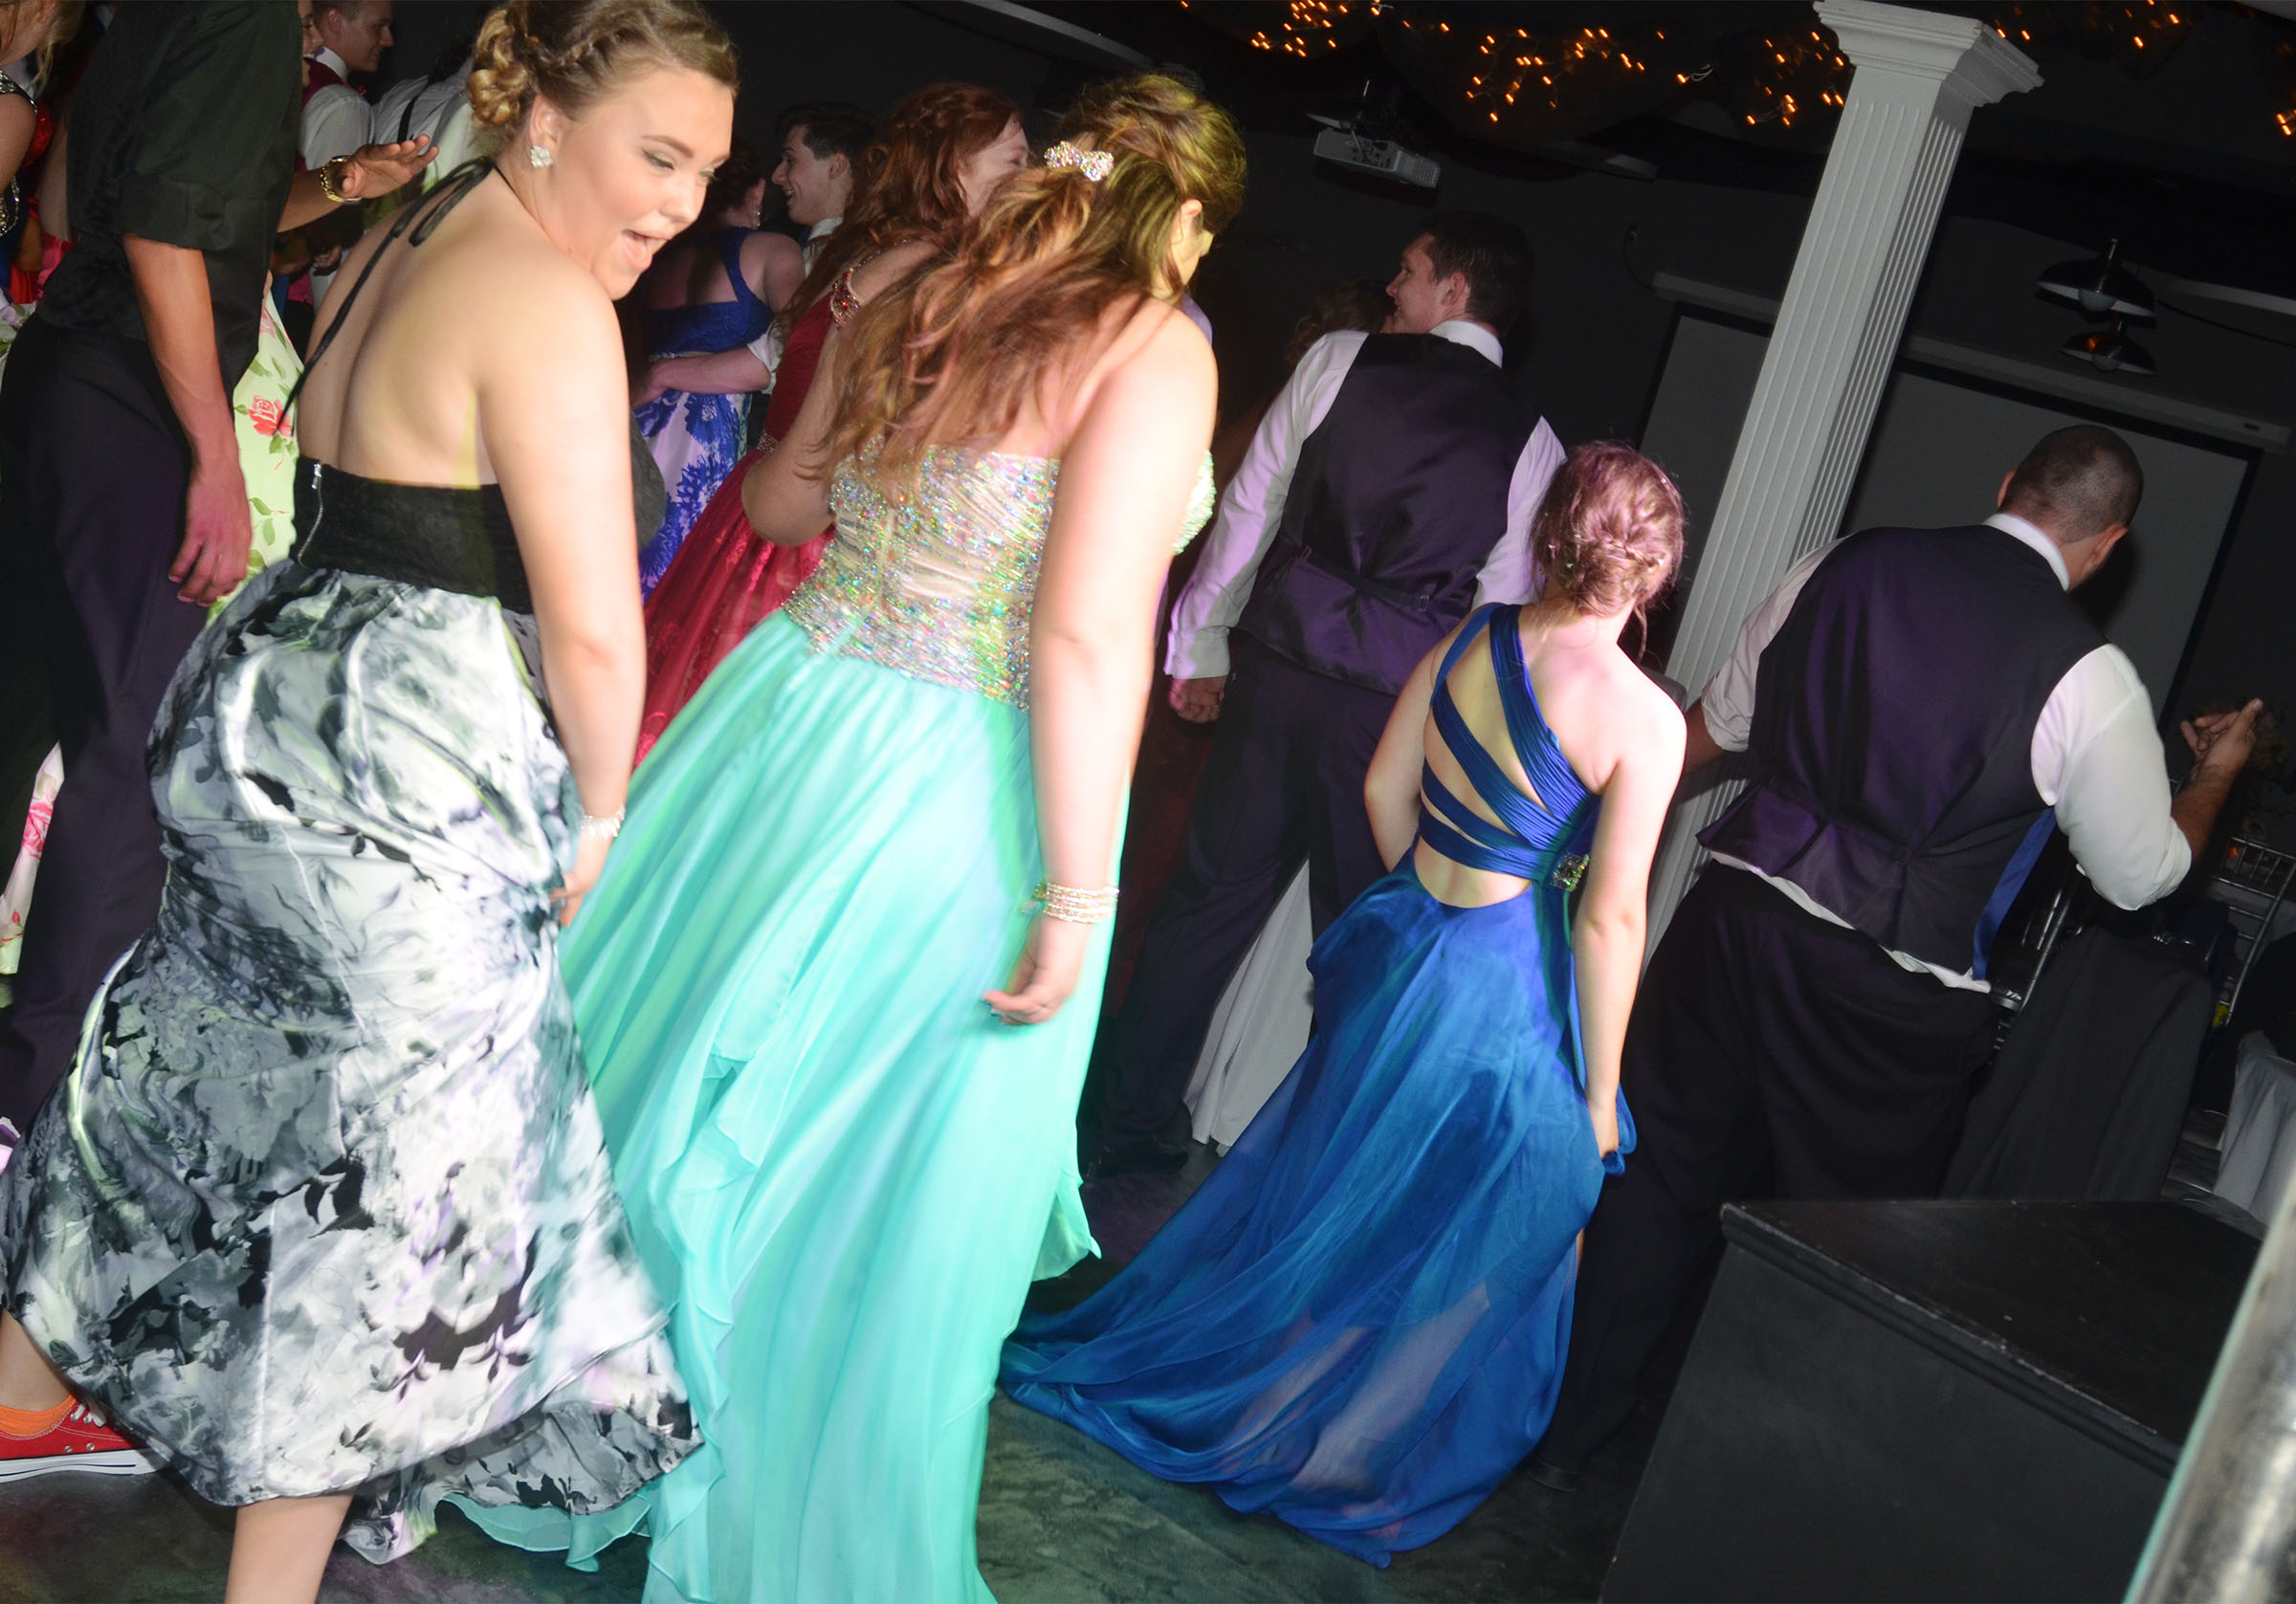 CHS junior Haley Fitch, at left, and her classmates dance at prom.